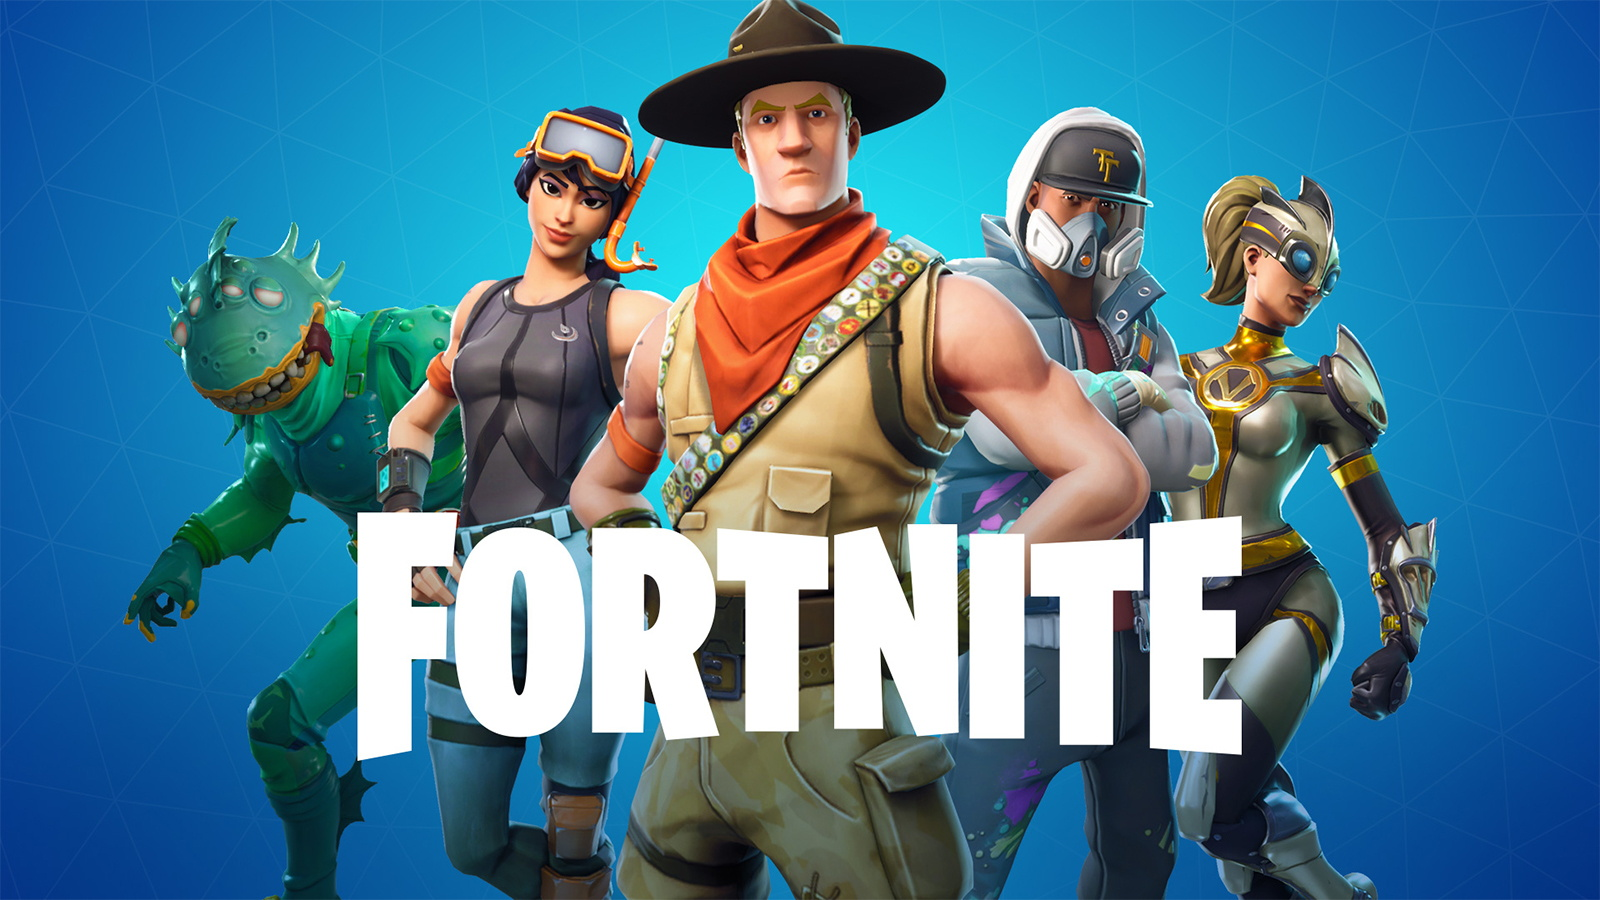 best vpn for fortnite to remove your ip ban play fortnite on any device - does fortnite ip ban